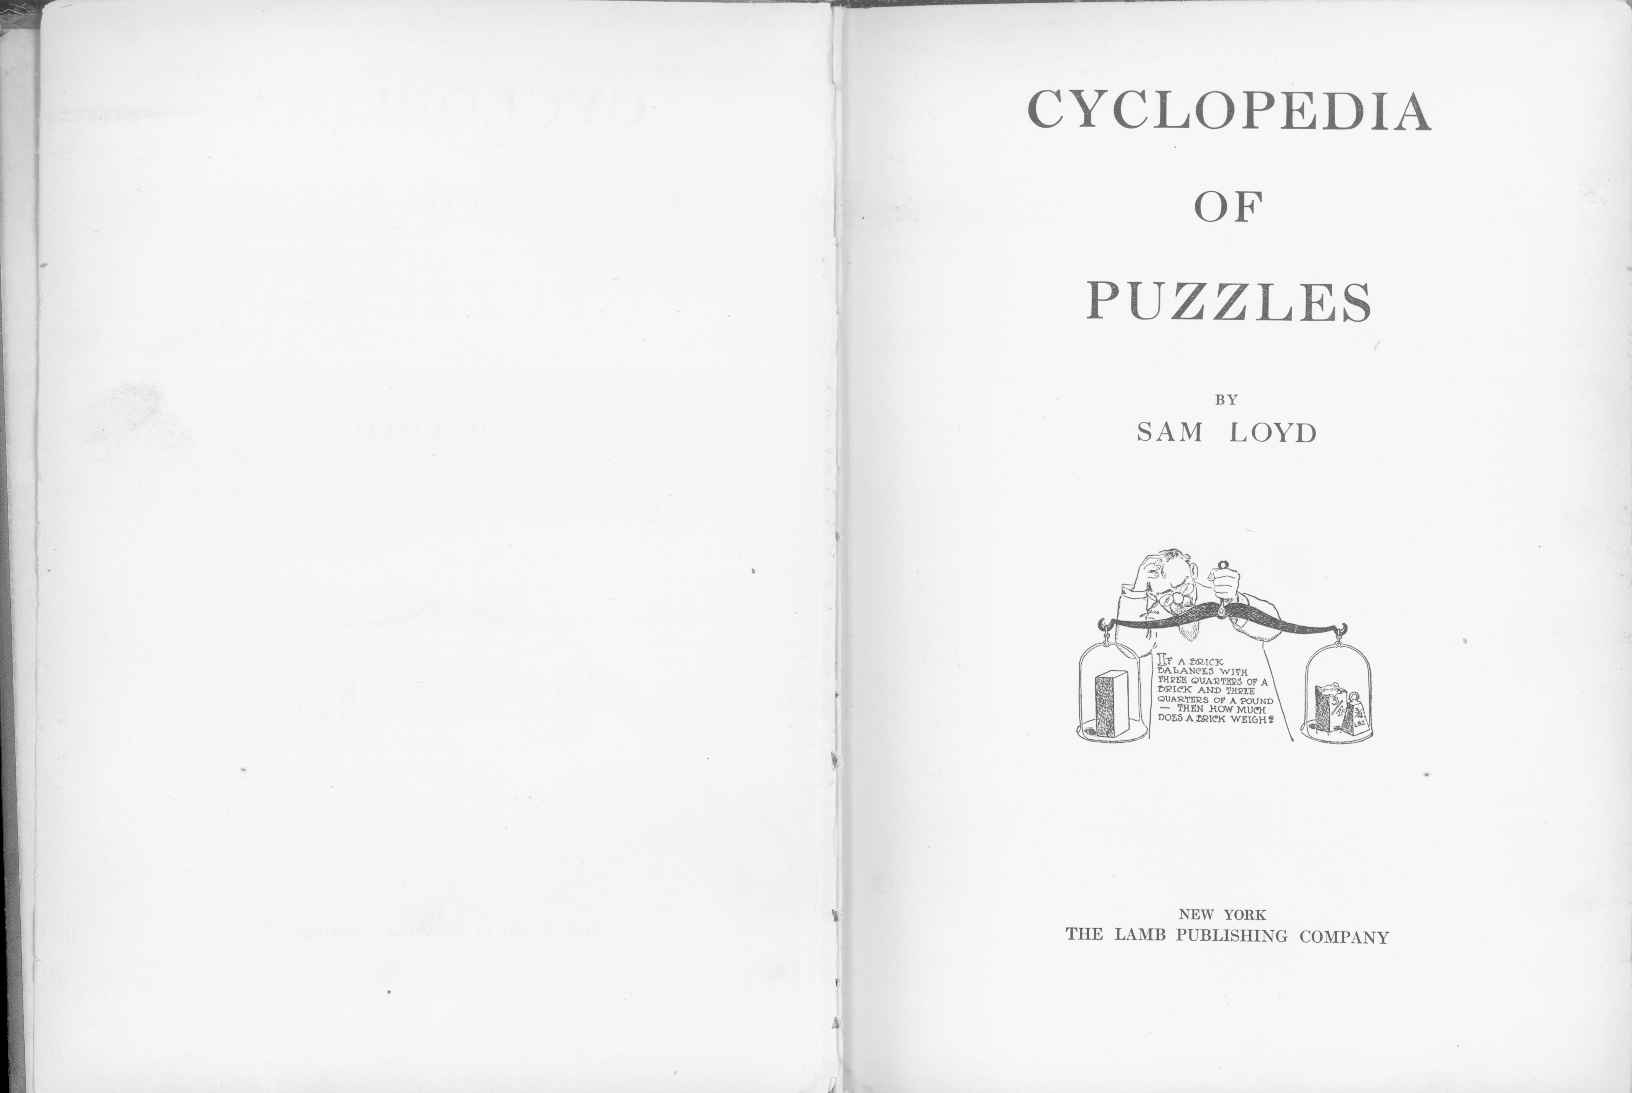 Sam Loyd - Cyclopedia of Puzzles - page 2-3